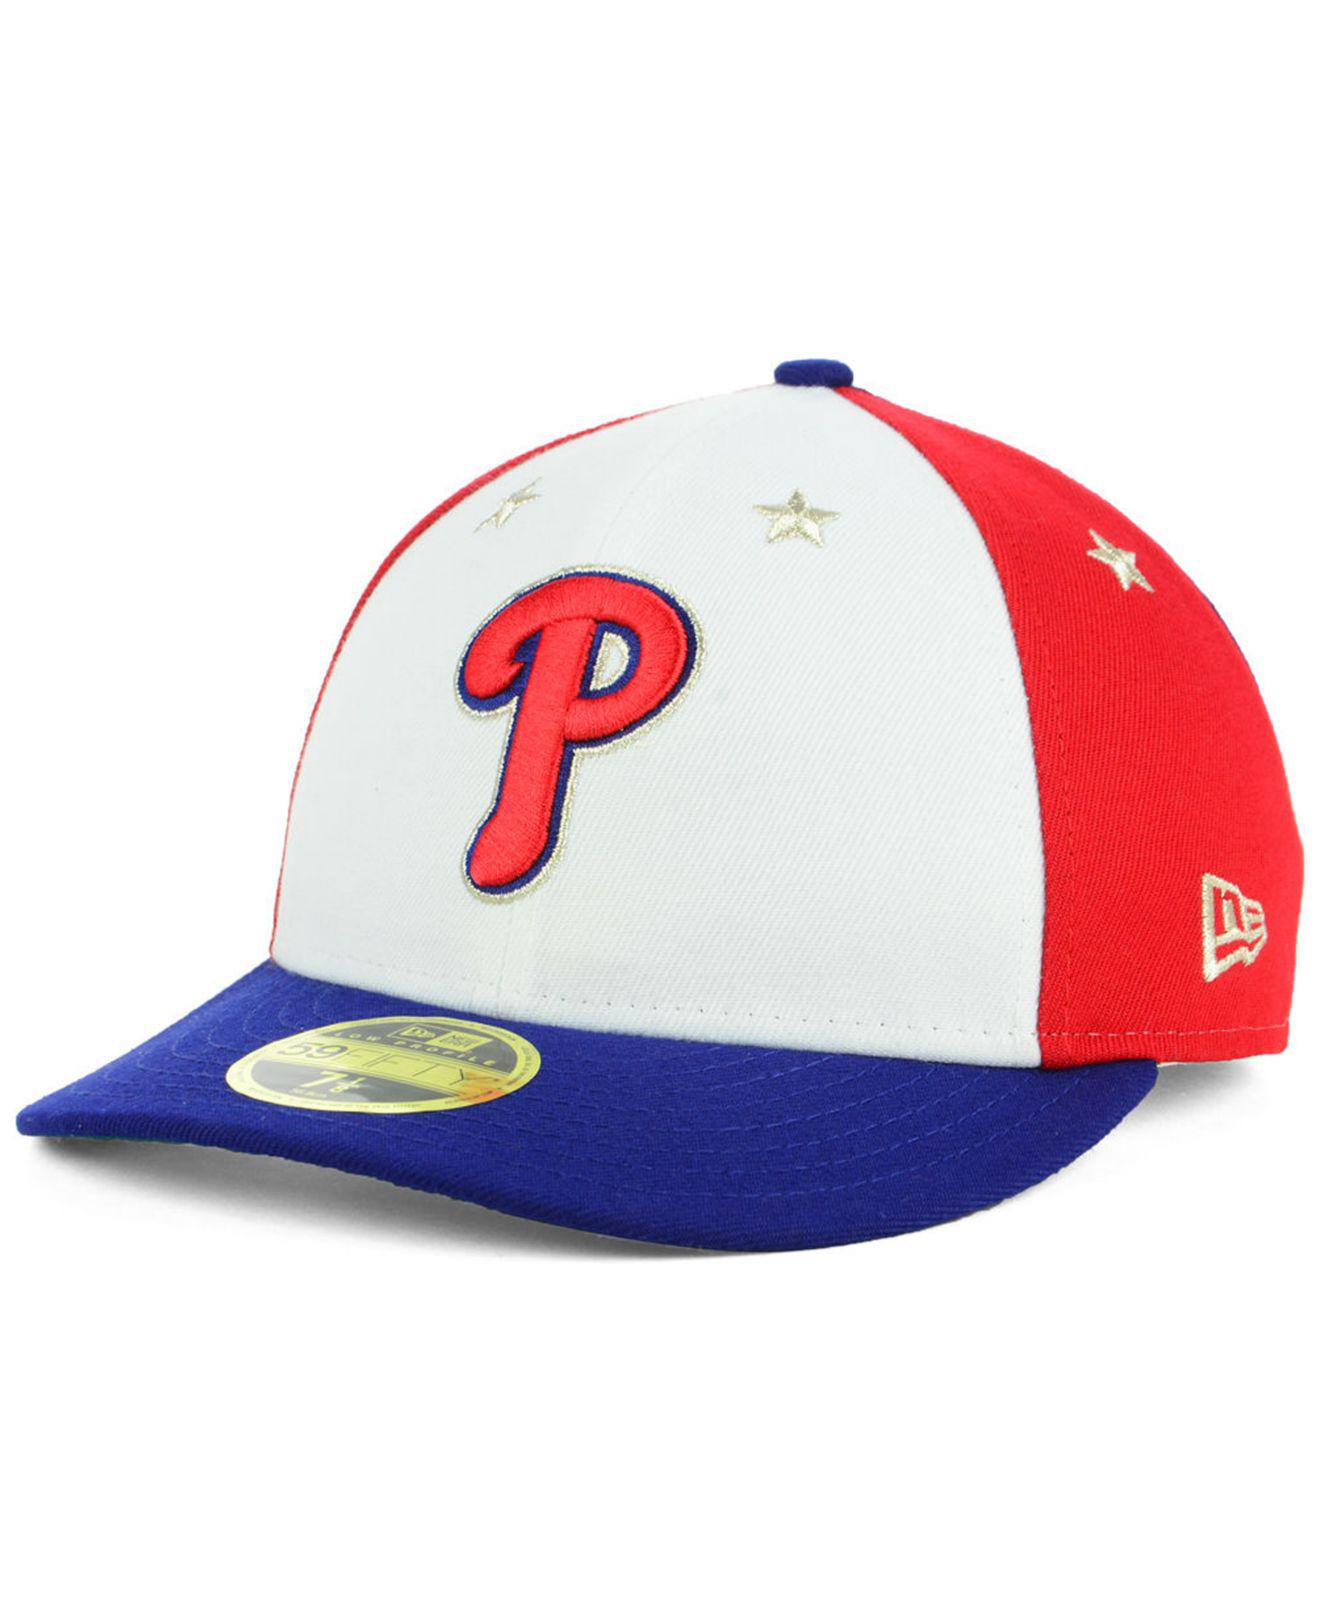 super popular 6a585 55148 ... netherlands philadelphia phillies all star game patch low profile 59fifty  fitted cap 2018 for. view